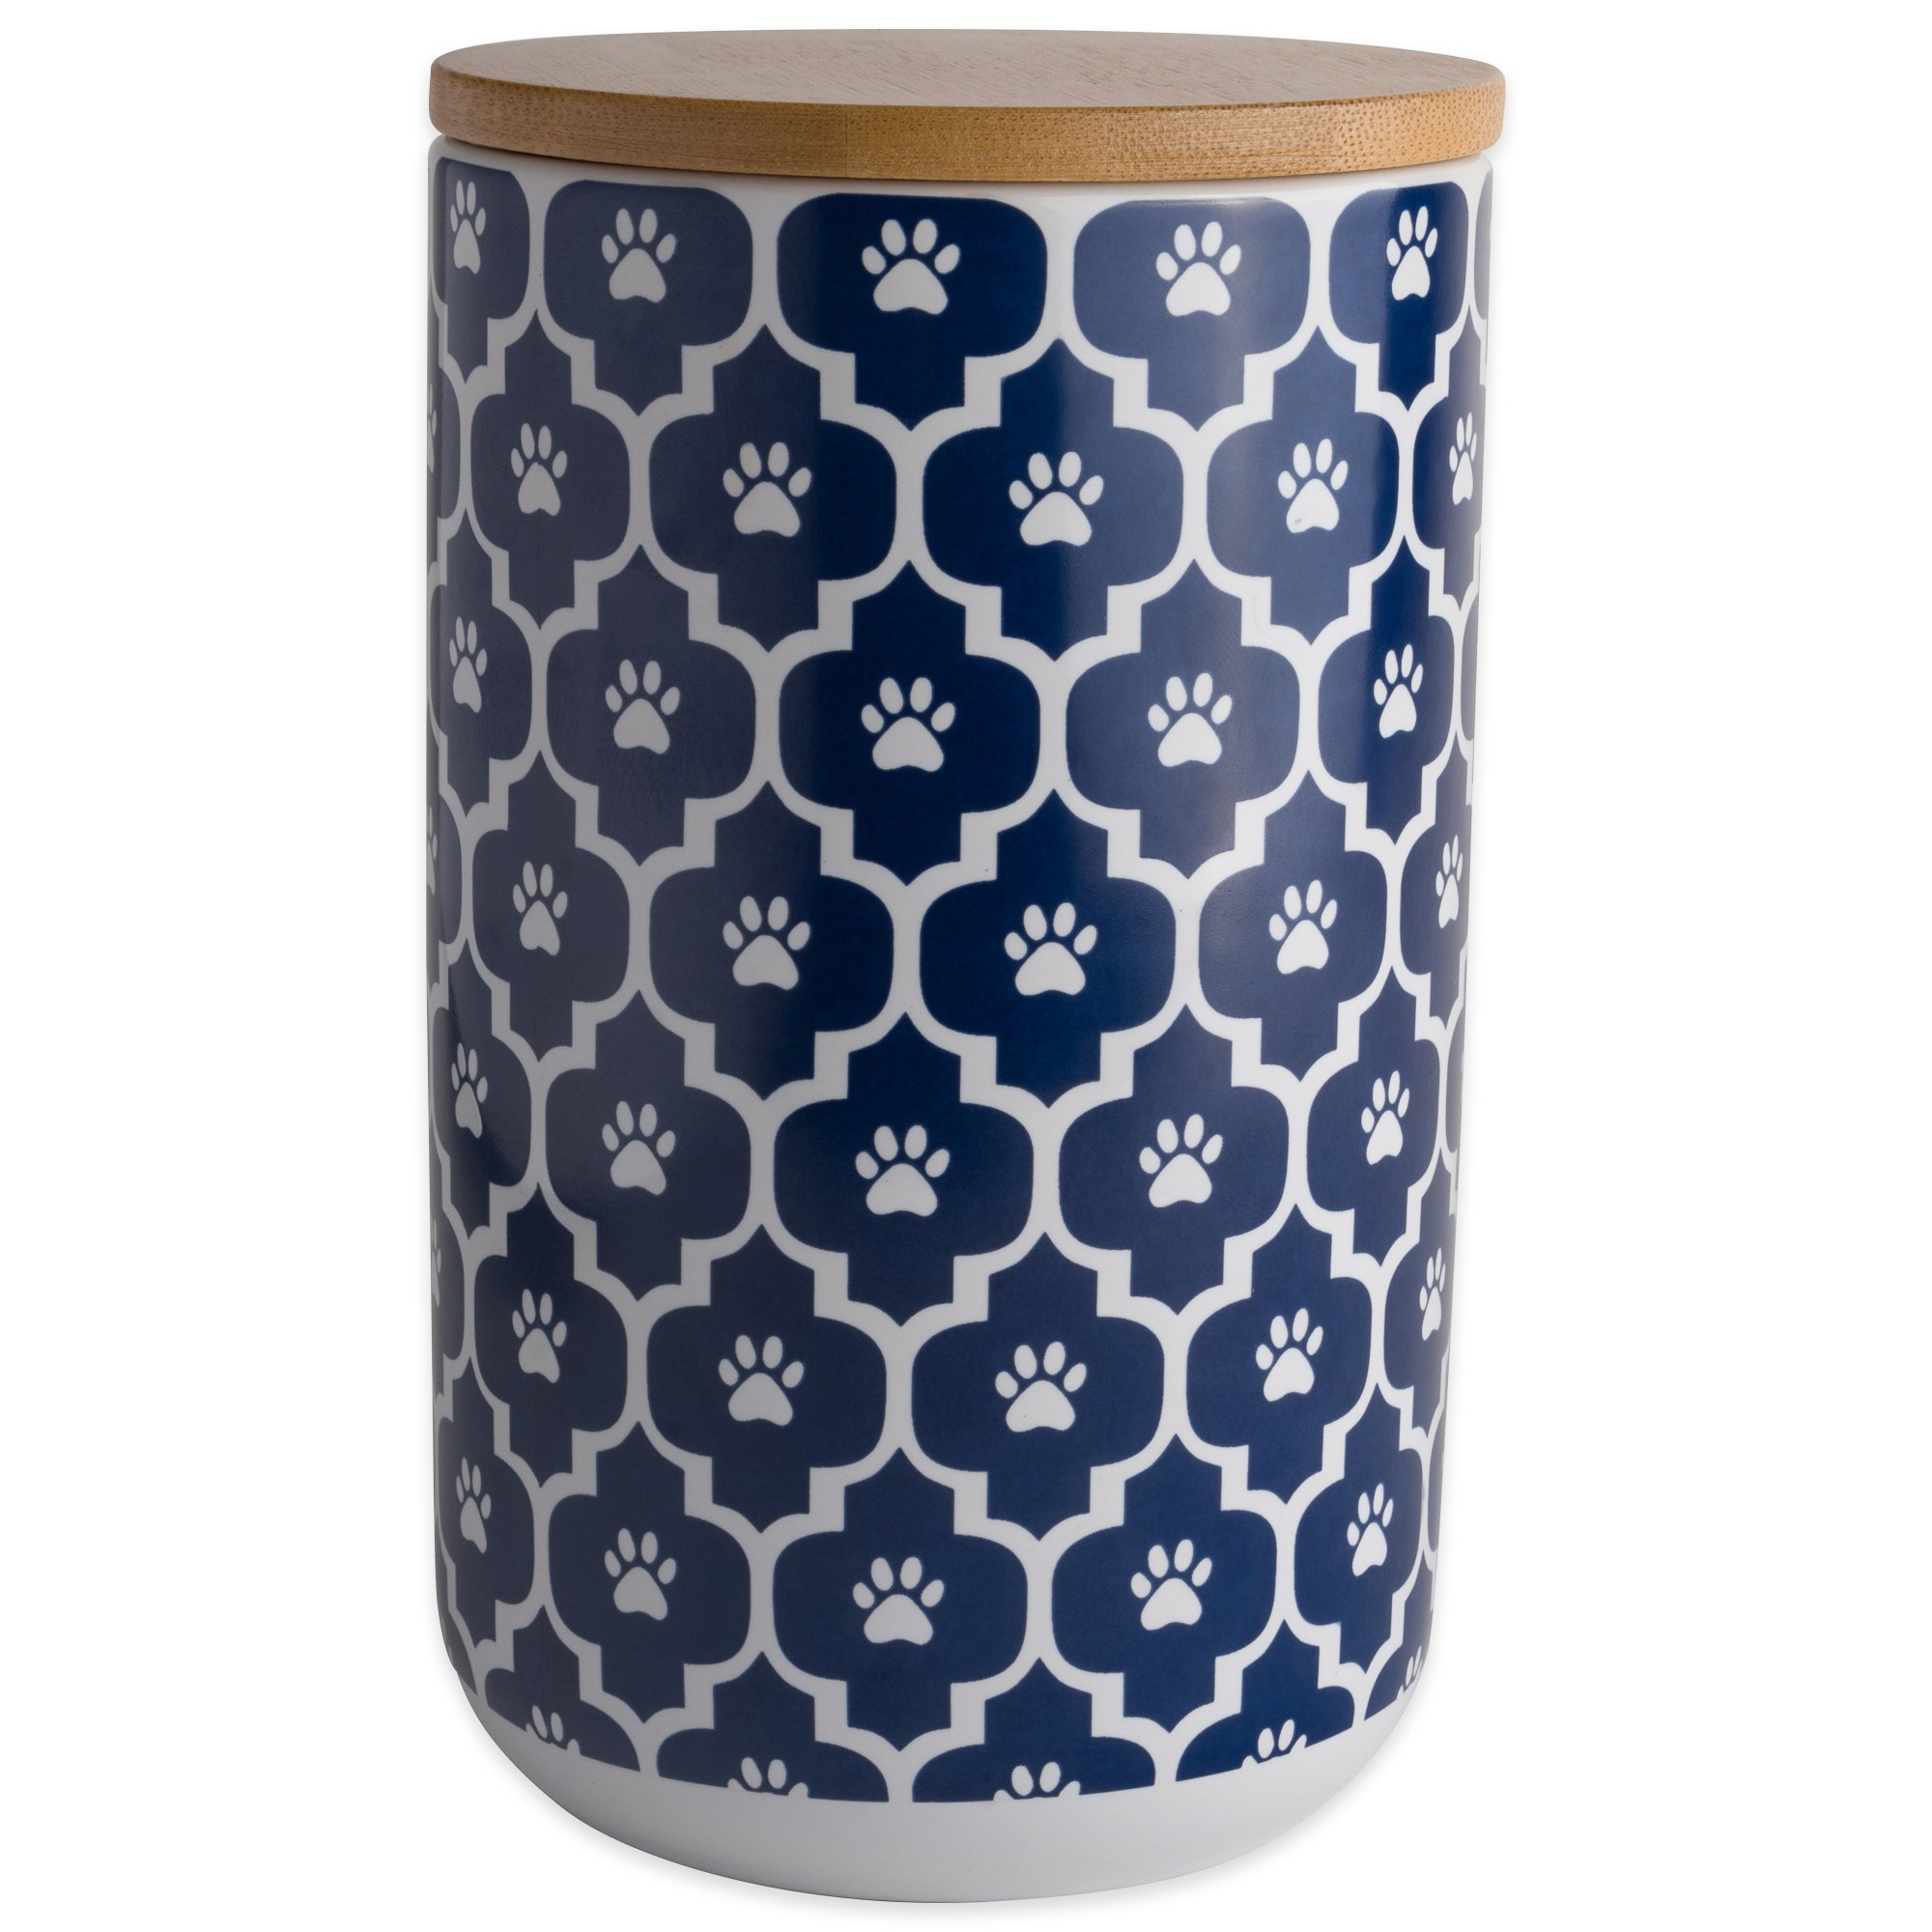 Bone Dry DII Ceramic Pet Treat Storage Canister with Air Tight Lid 4''(Dia) x 6.5'' (H), Perfect Food and Treat Jar for Dogs and Cats-Nautical Blue Paw Lattice